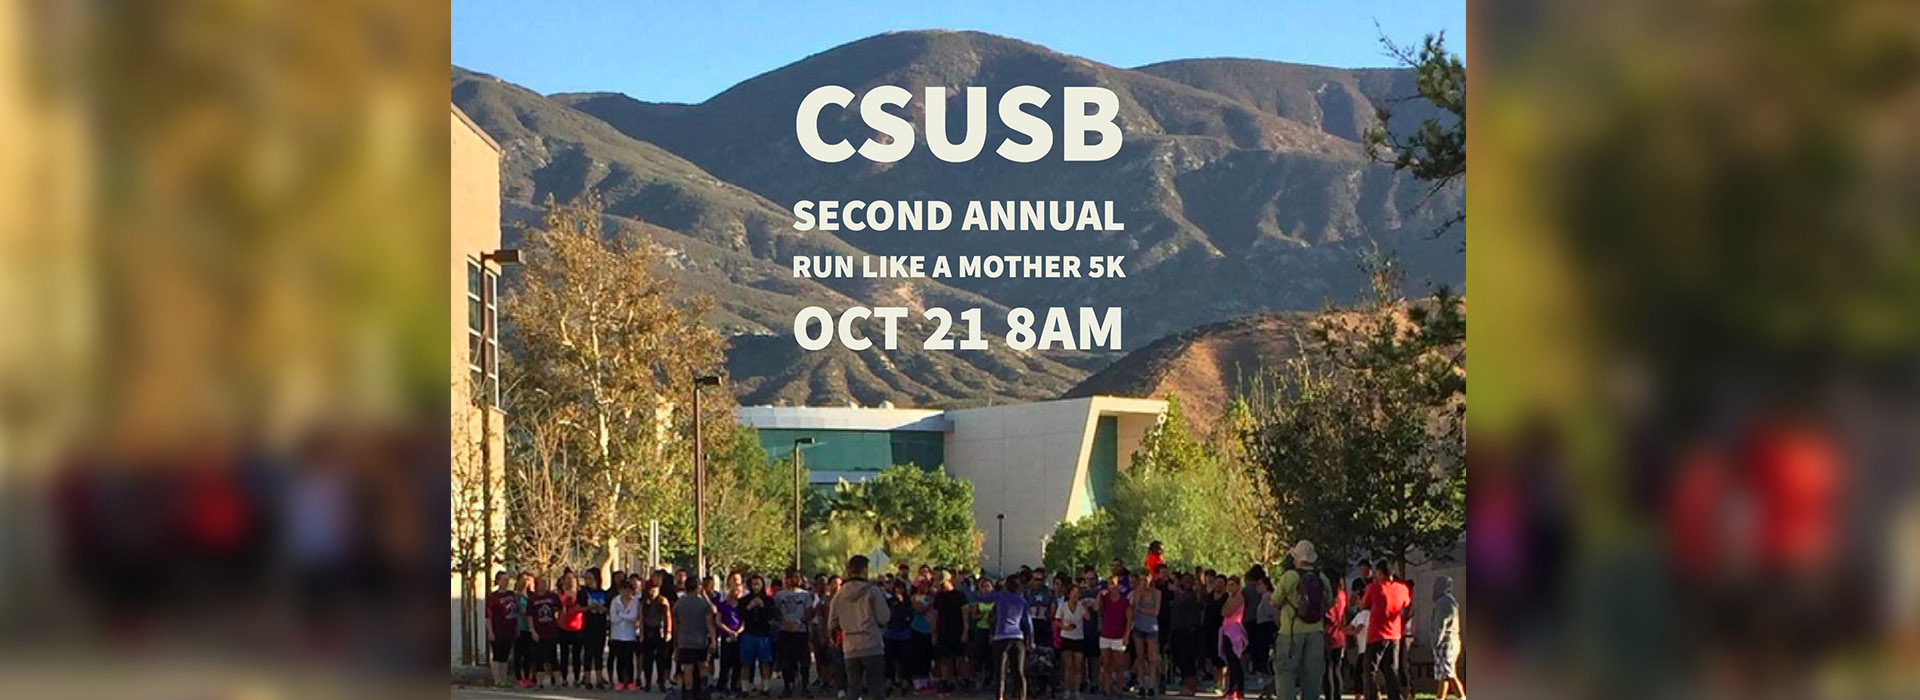 CSUSB to host second annual Run Like a Mother 5K on Oct. 21